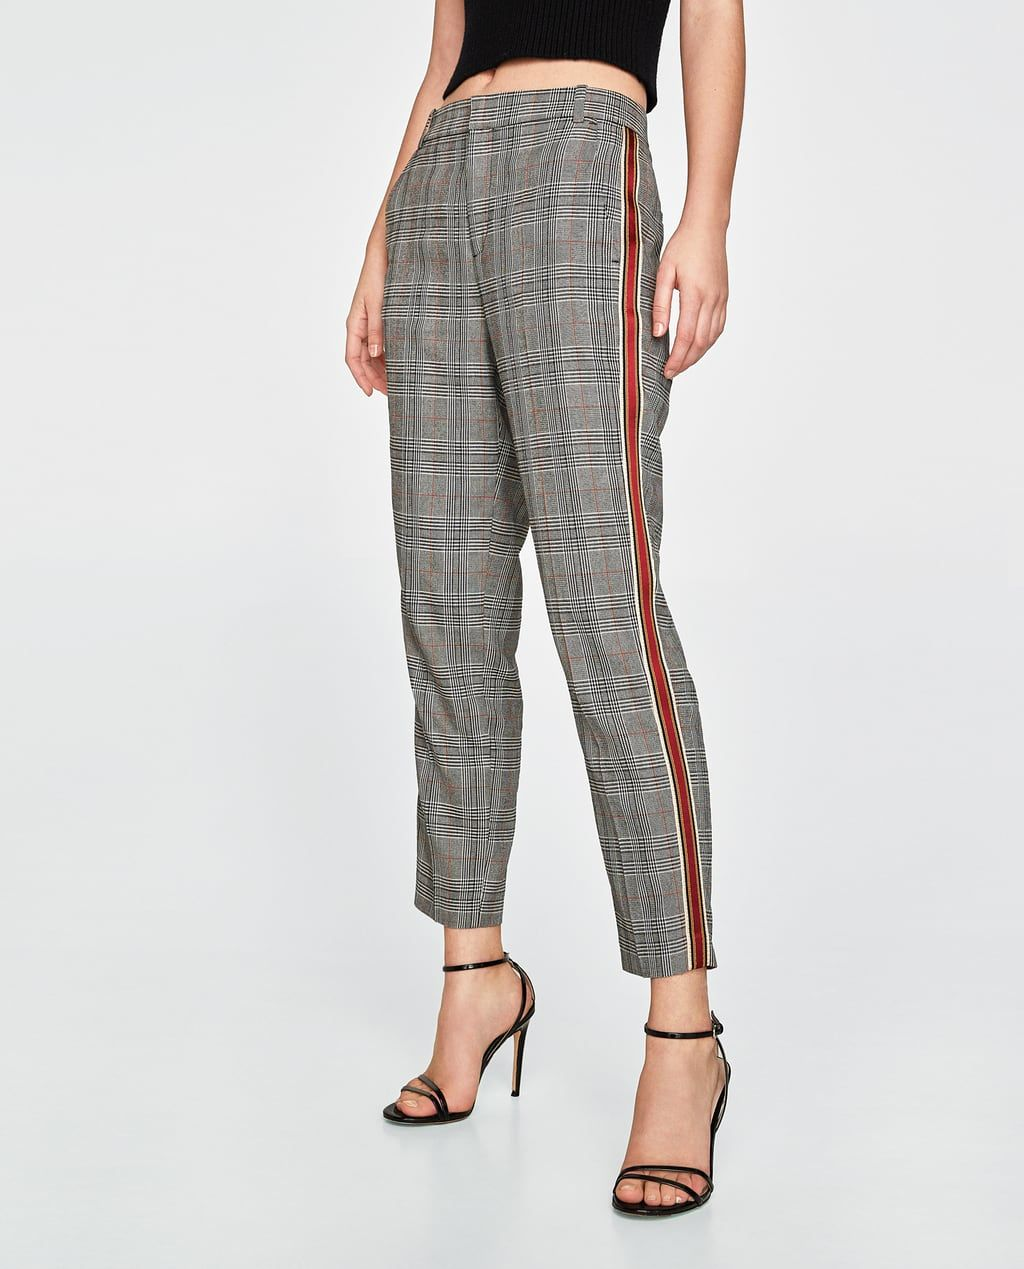 0548e826 Image 7 of CHECKED TROUSERS WITH SIDE STRIPES from Zara | abby ...